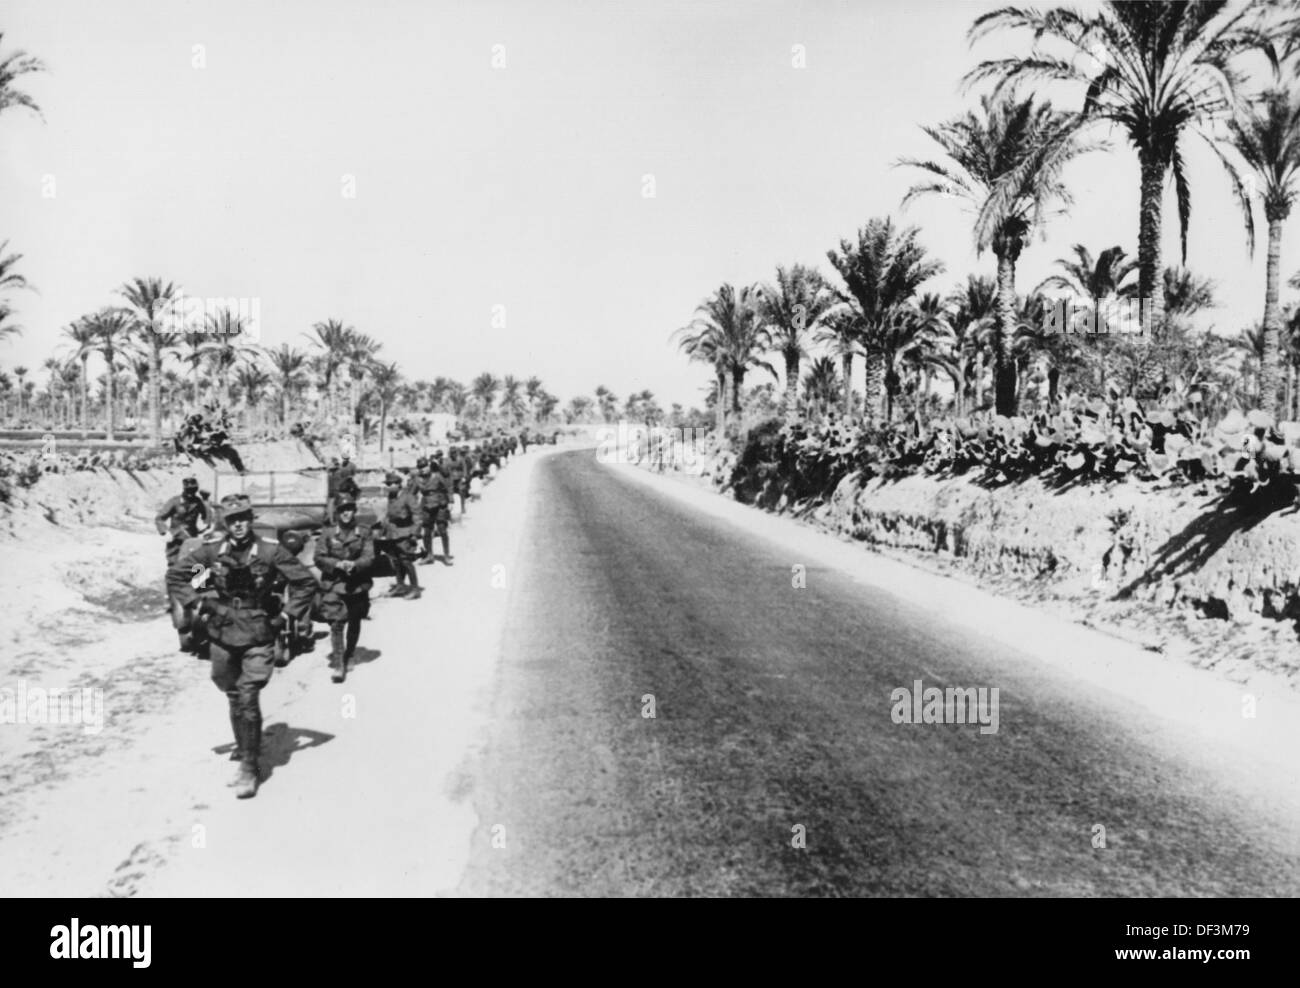 The image from the Nazi Propaganda! depicts soldiers of the German Wehrmacht advancing in Africa, published on 28 March 1941. Place unknown. Photo: Berliner Verlag/Archiv - Stock Image